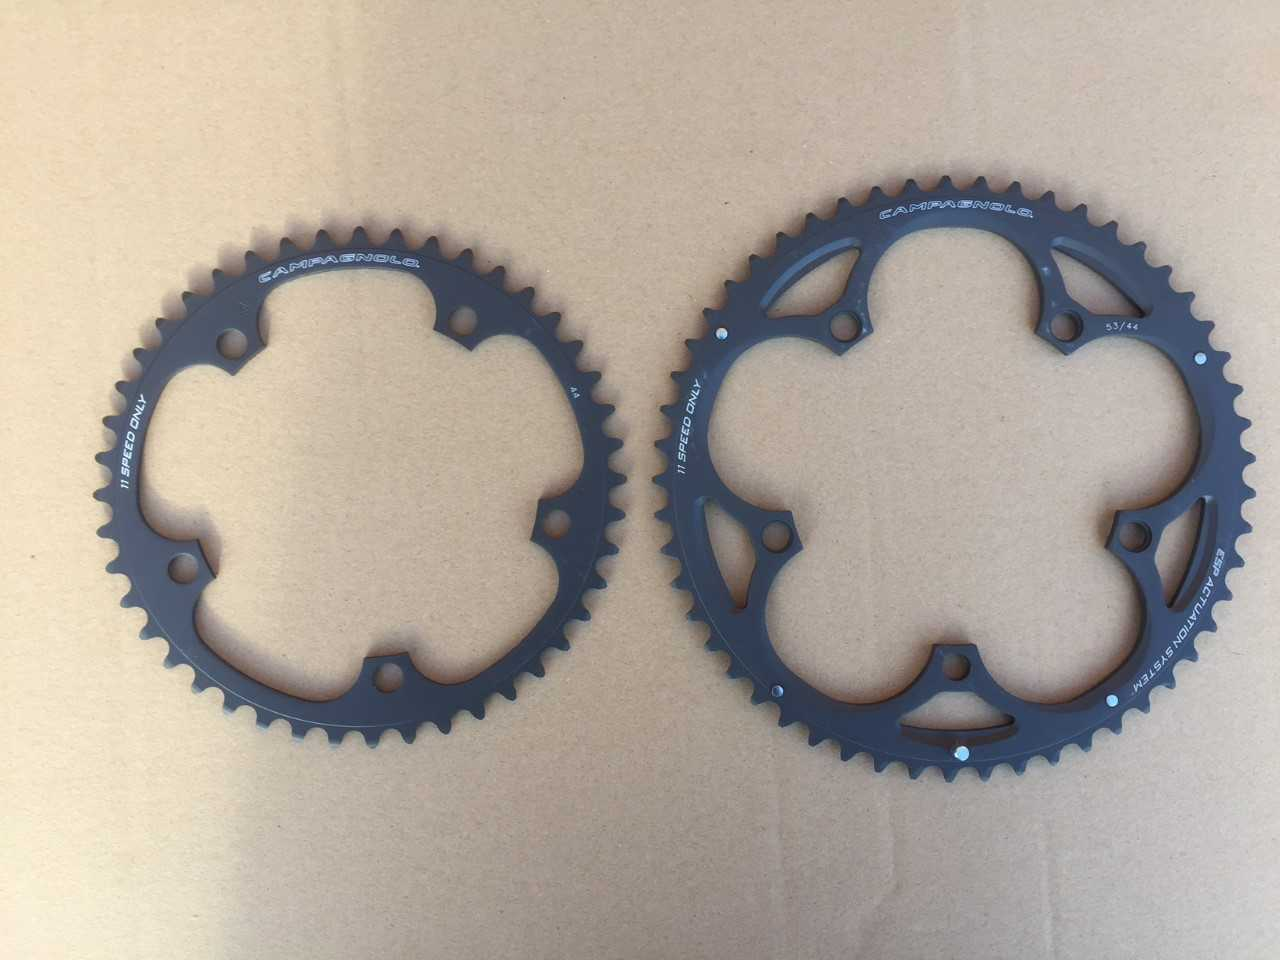 Campagnolo Record 11s Time Trial Triathlon Bike Chainrings 5 Bolt 53 44 or 53 46